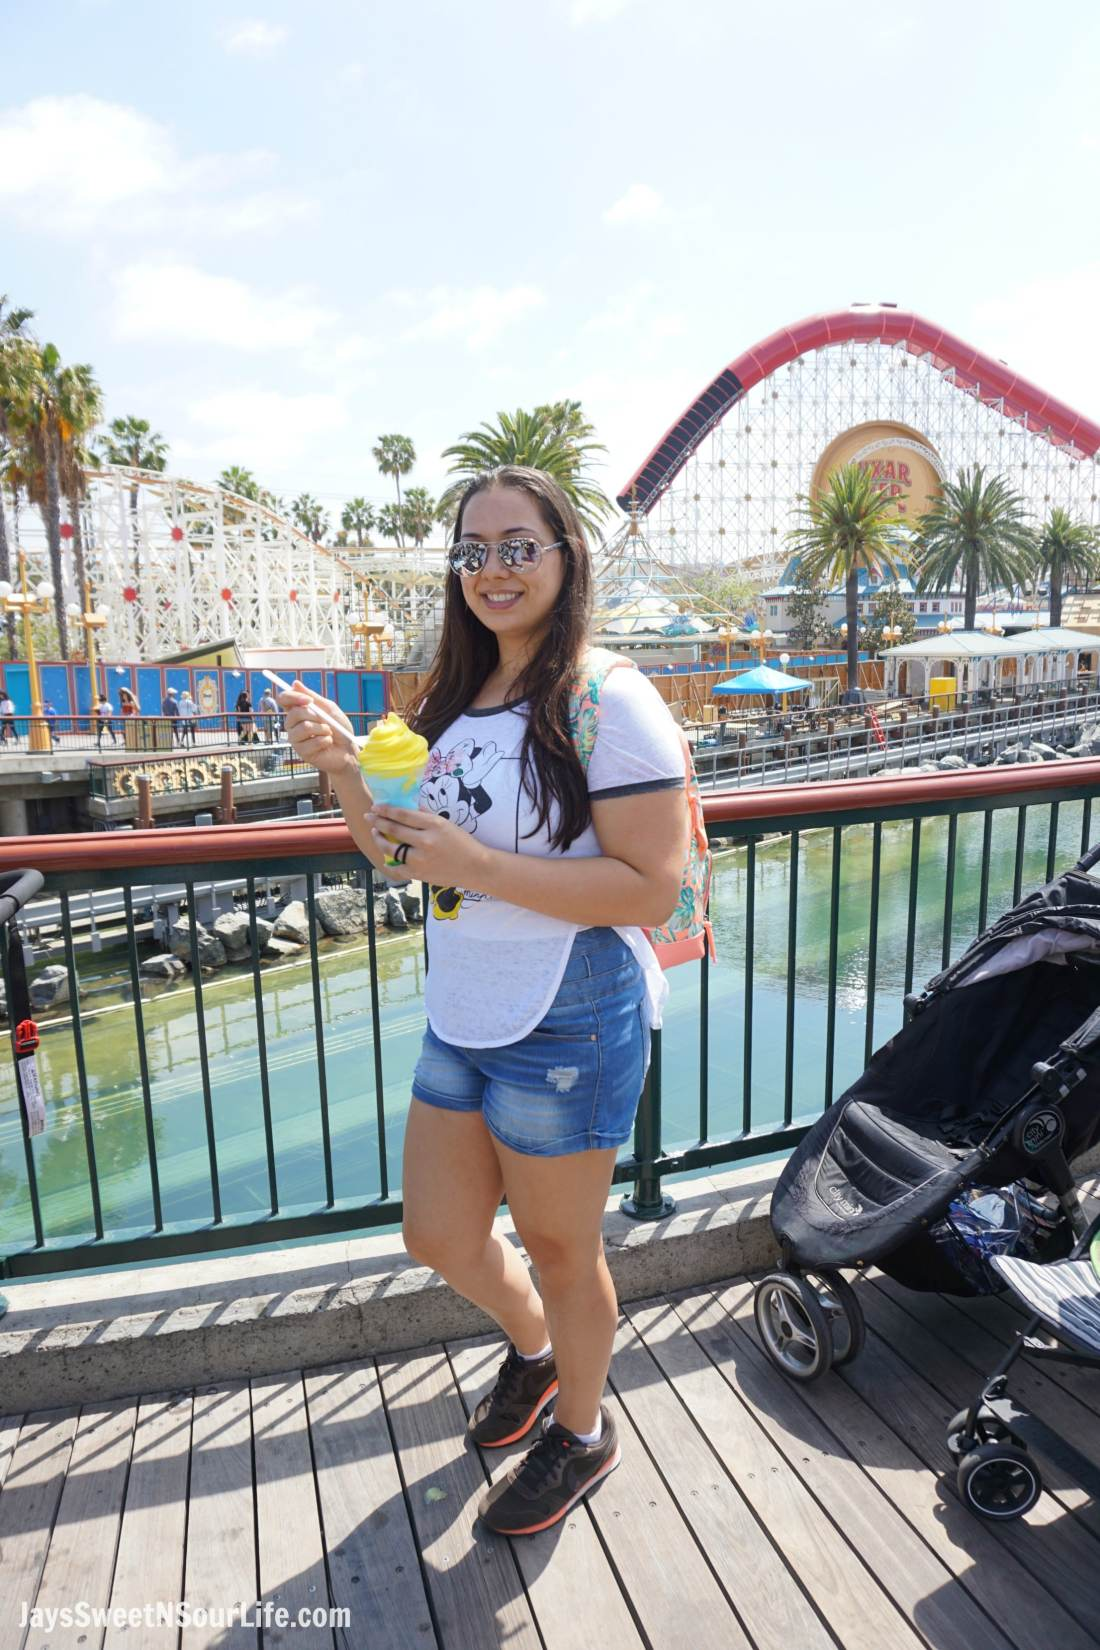 Pixar Pier at Disneyland Filipino Woman Eating Pixar Pier Frosty Parfait. Pixar Fest at Disneyland runs from April 13 through September 3rd.